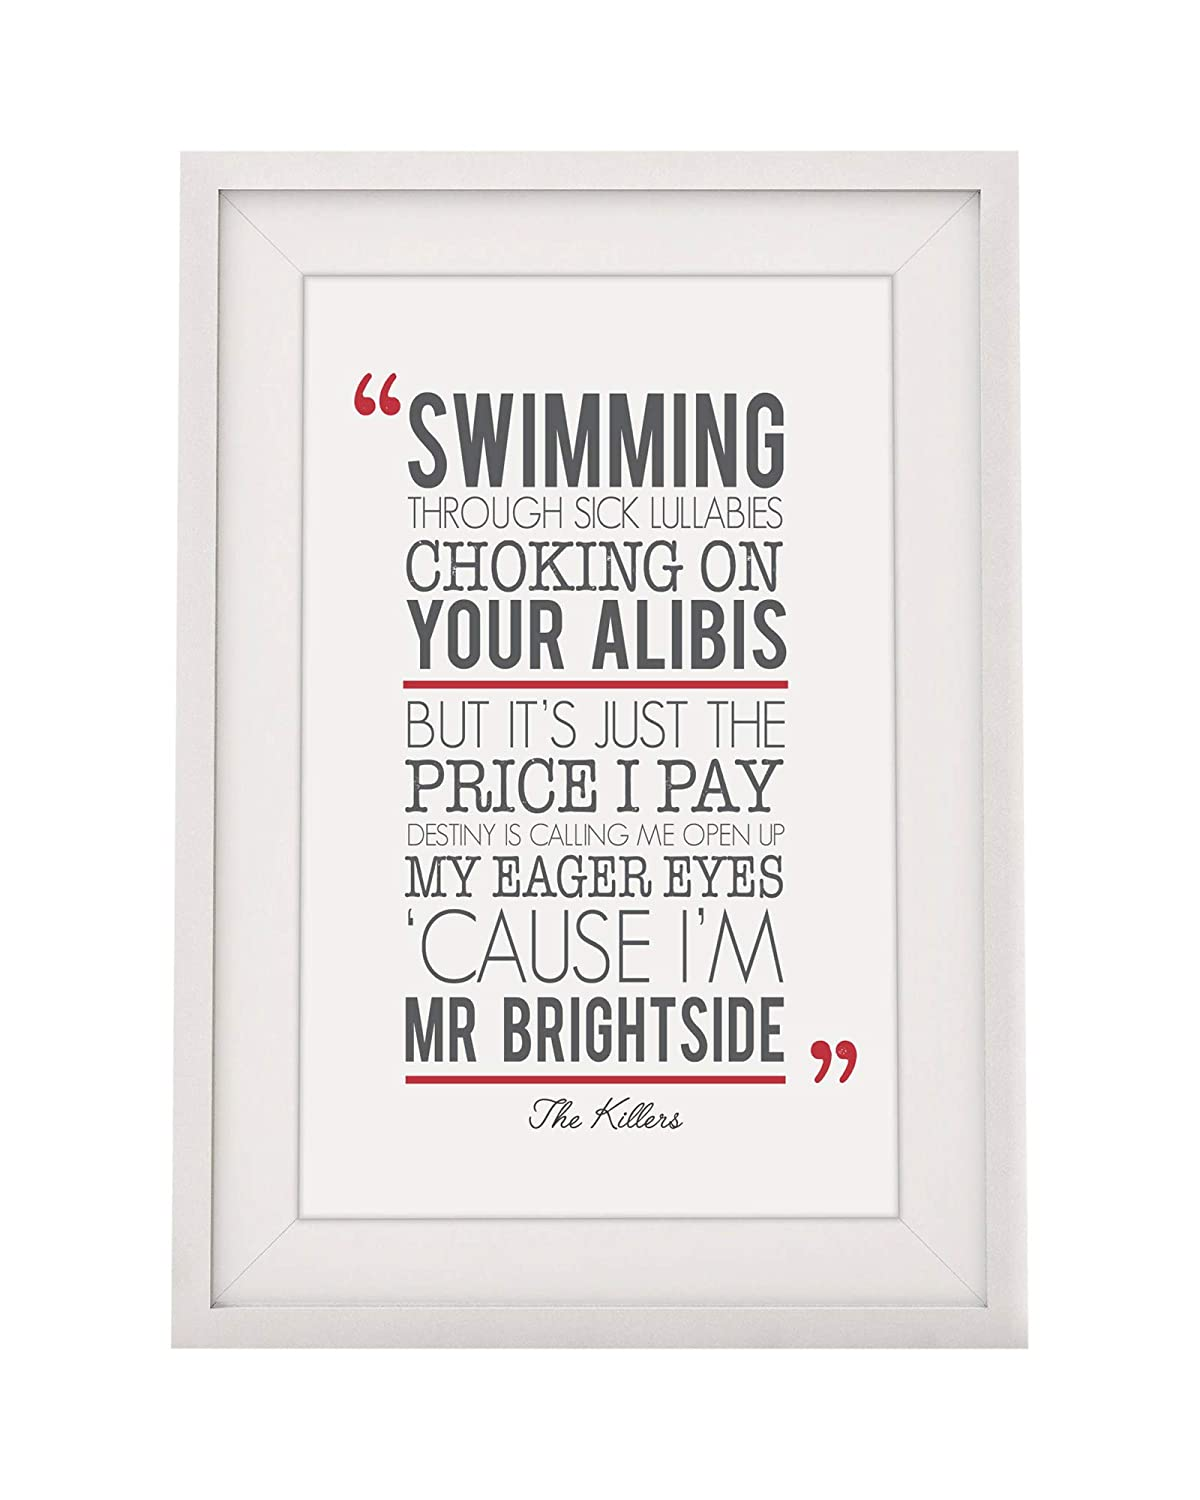 The Killers Mr Brightside Song Lyrics Gift - Framed Print With Mount ...